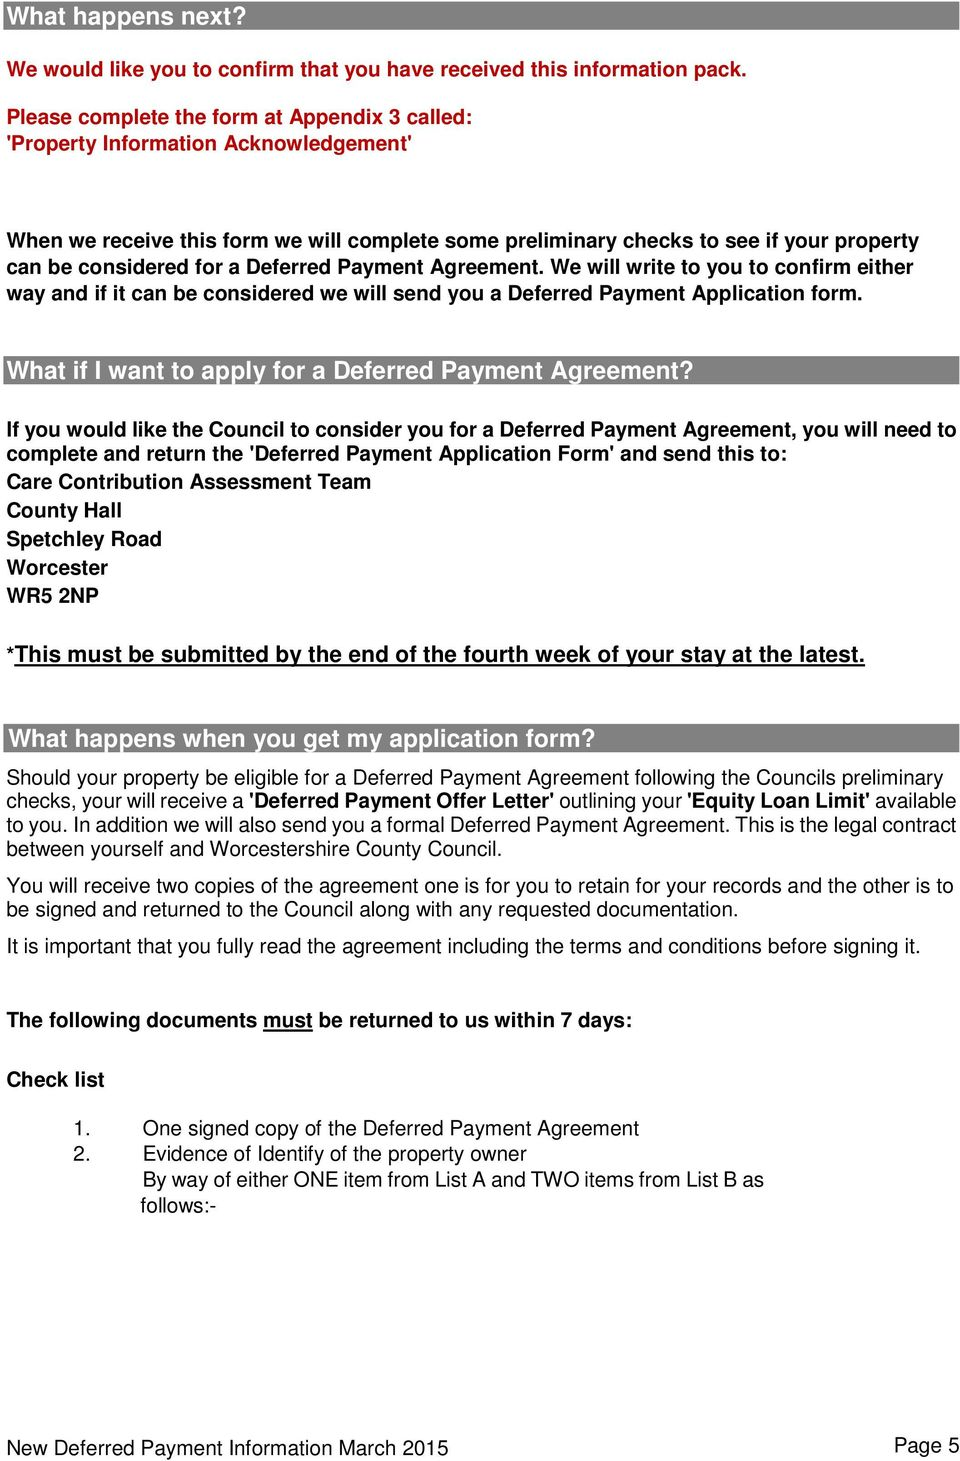 Deferred Payment Agreement Information Pack For Our Service Users